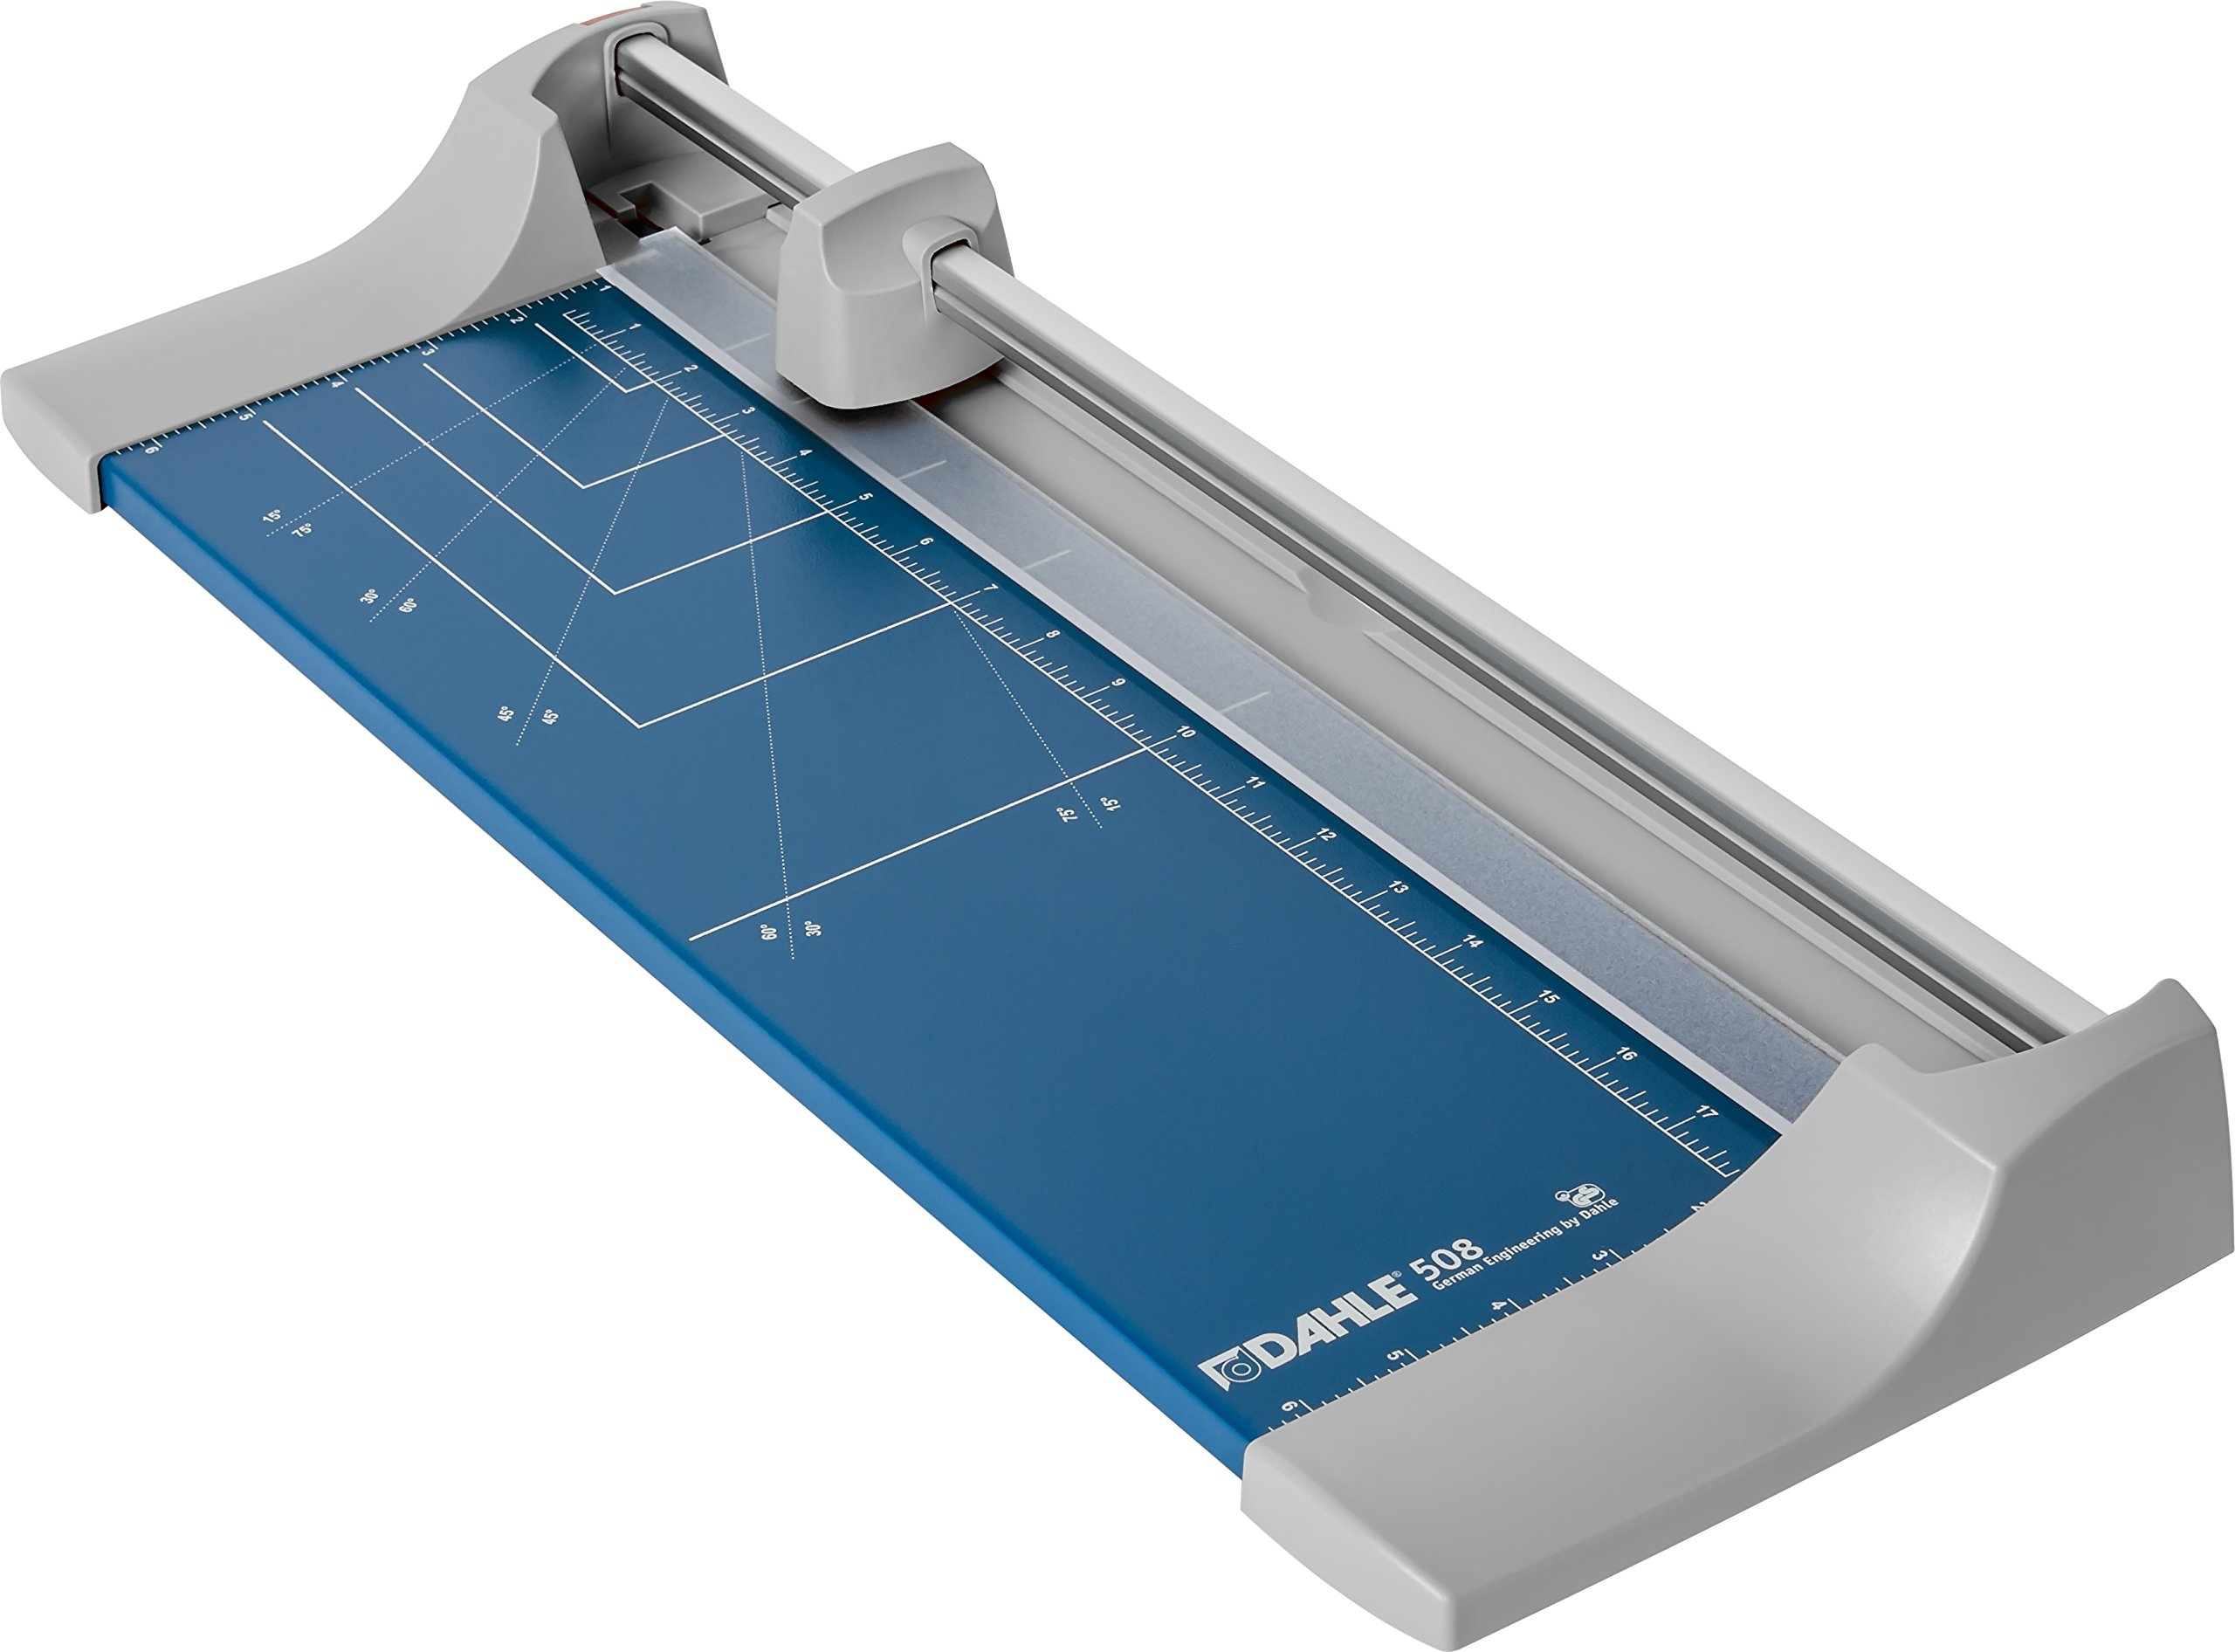 Dahle 508 Personal Rolling Trimmer, 18'' Cut Length, 7 Sheet Capacity, Self-Sharpening, Automatic Clamp, German Engineered Paper Cutter by Dahle